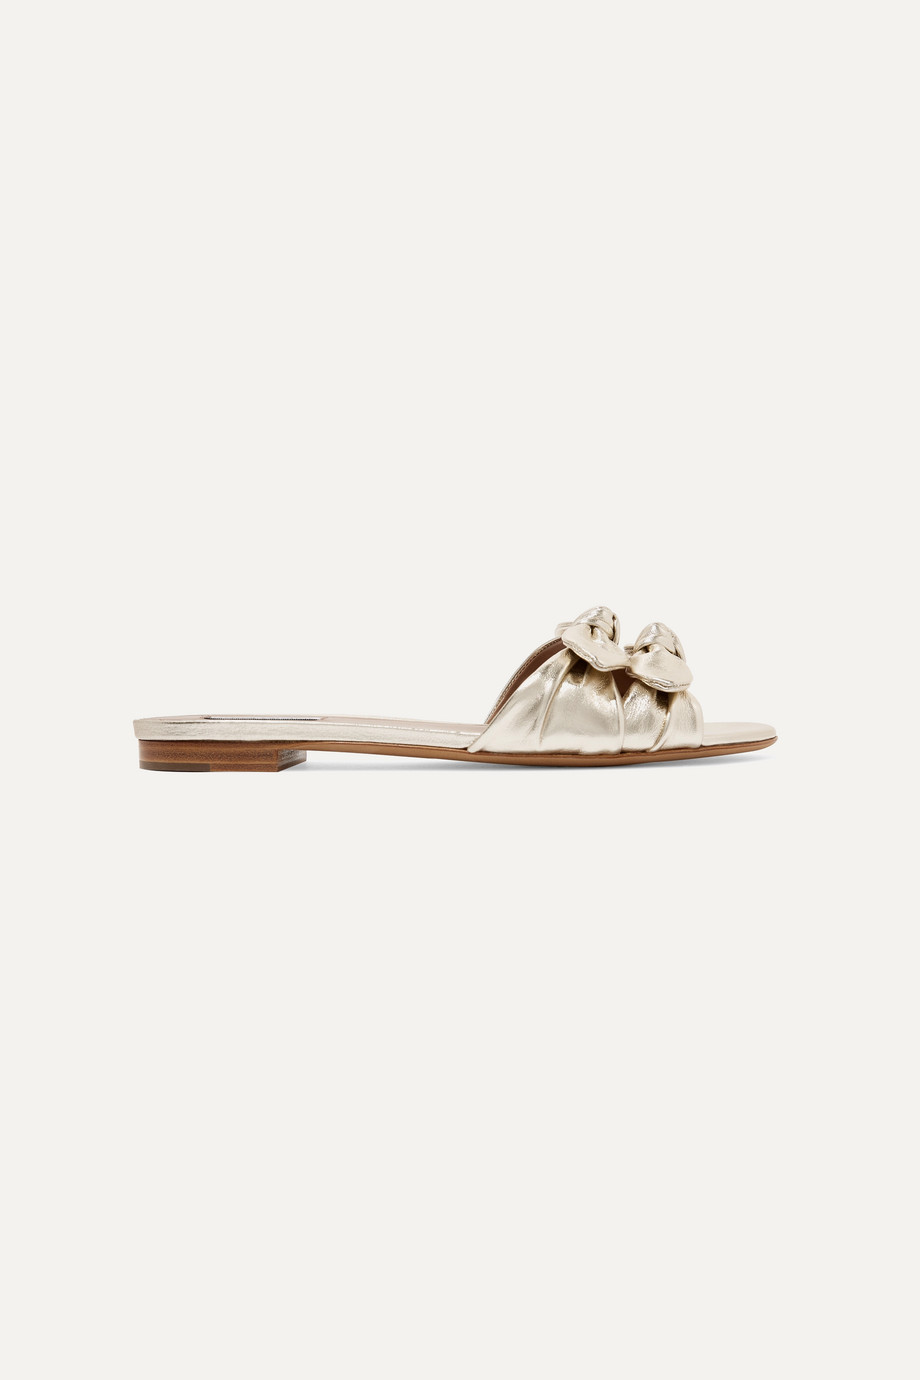 Tabitha Simmons Cleo bow-embellished metallic leather slides